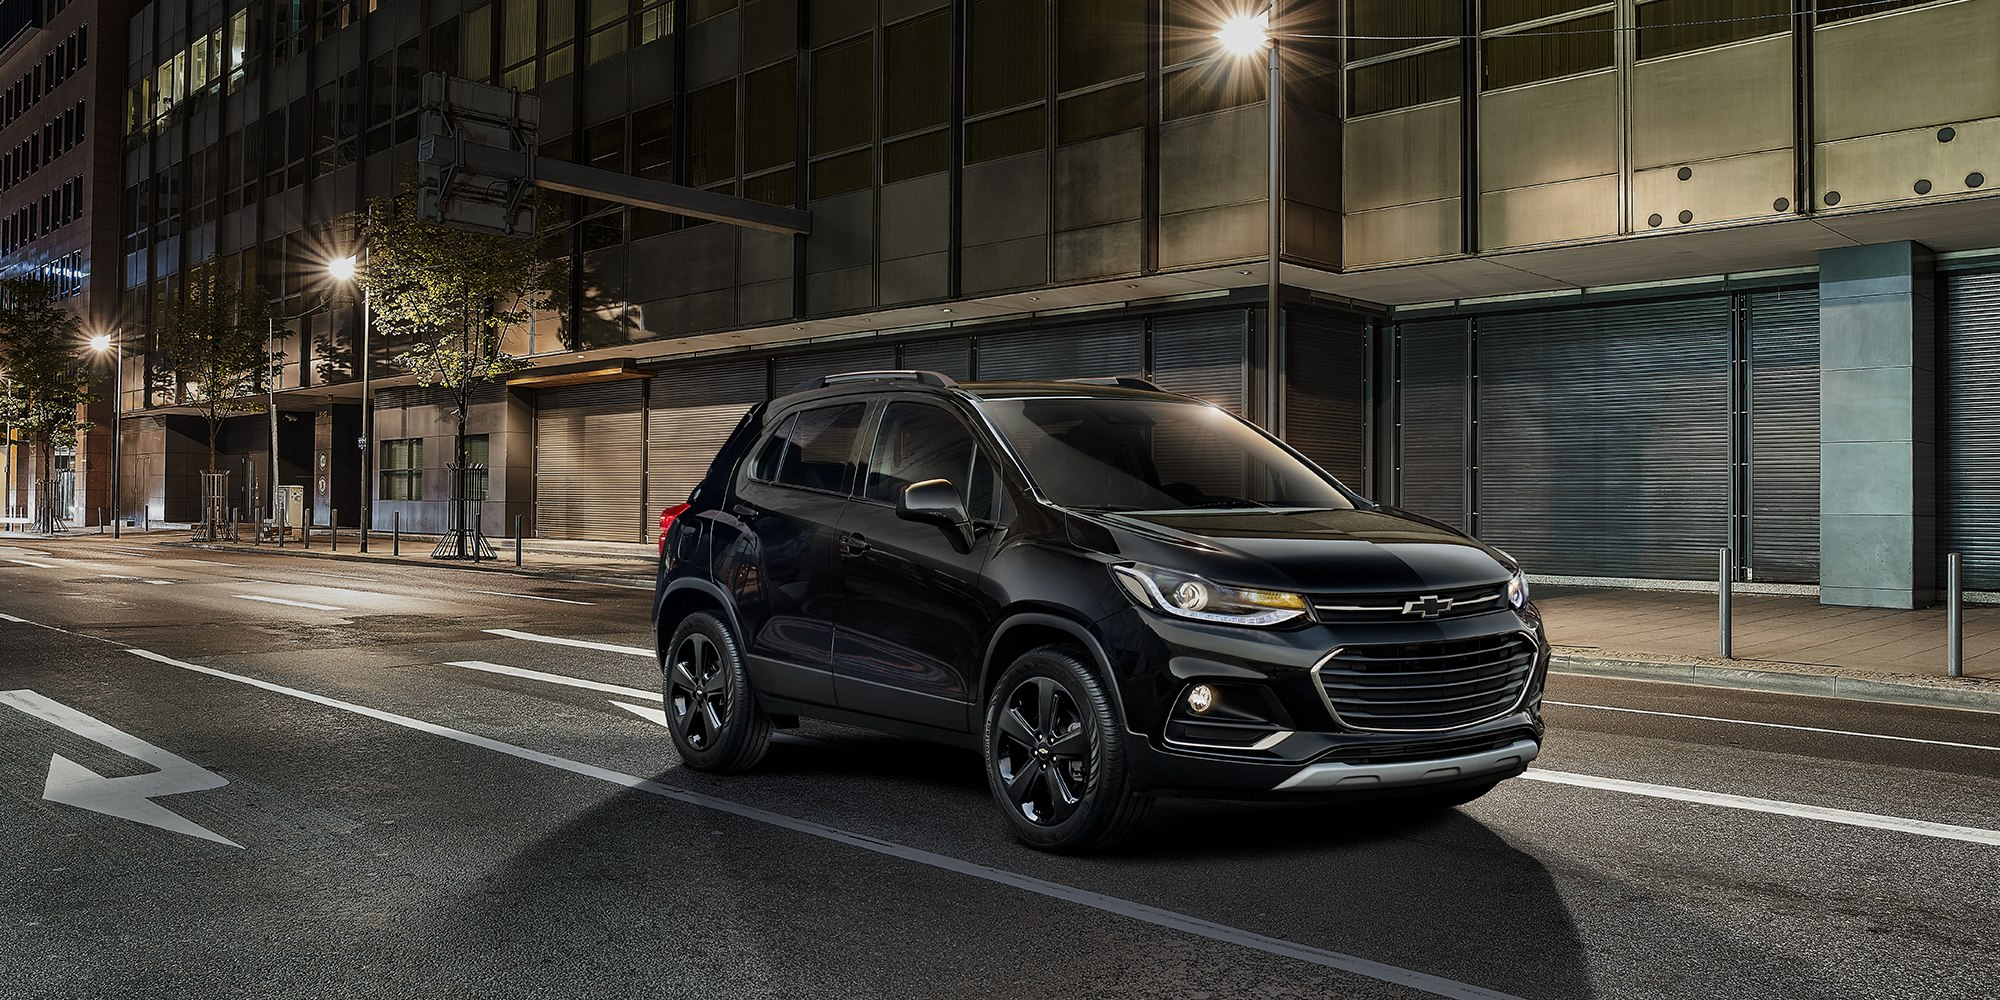 2019 Chevrolet Trax Leasing near Owasso, OK